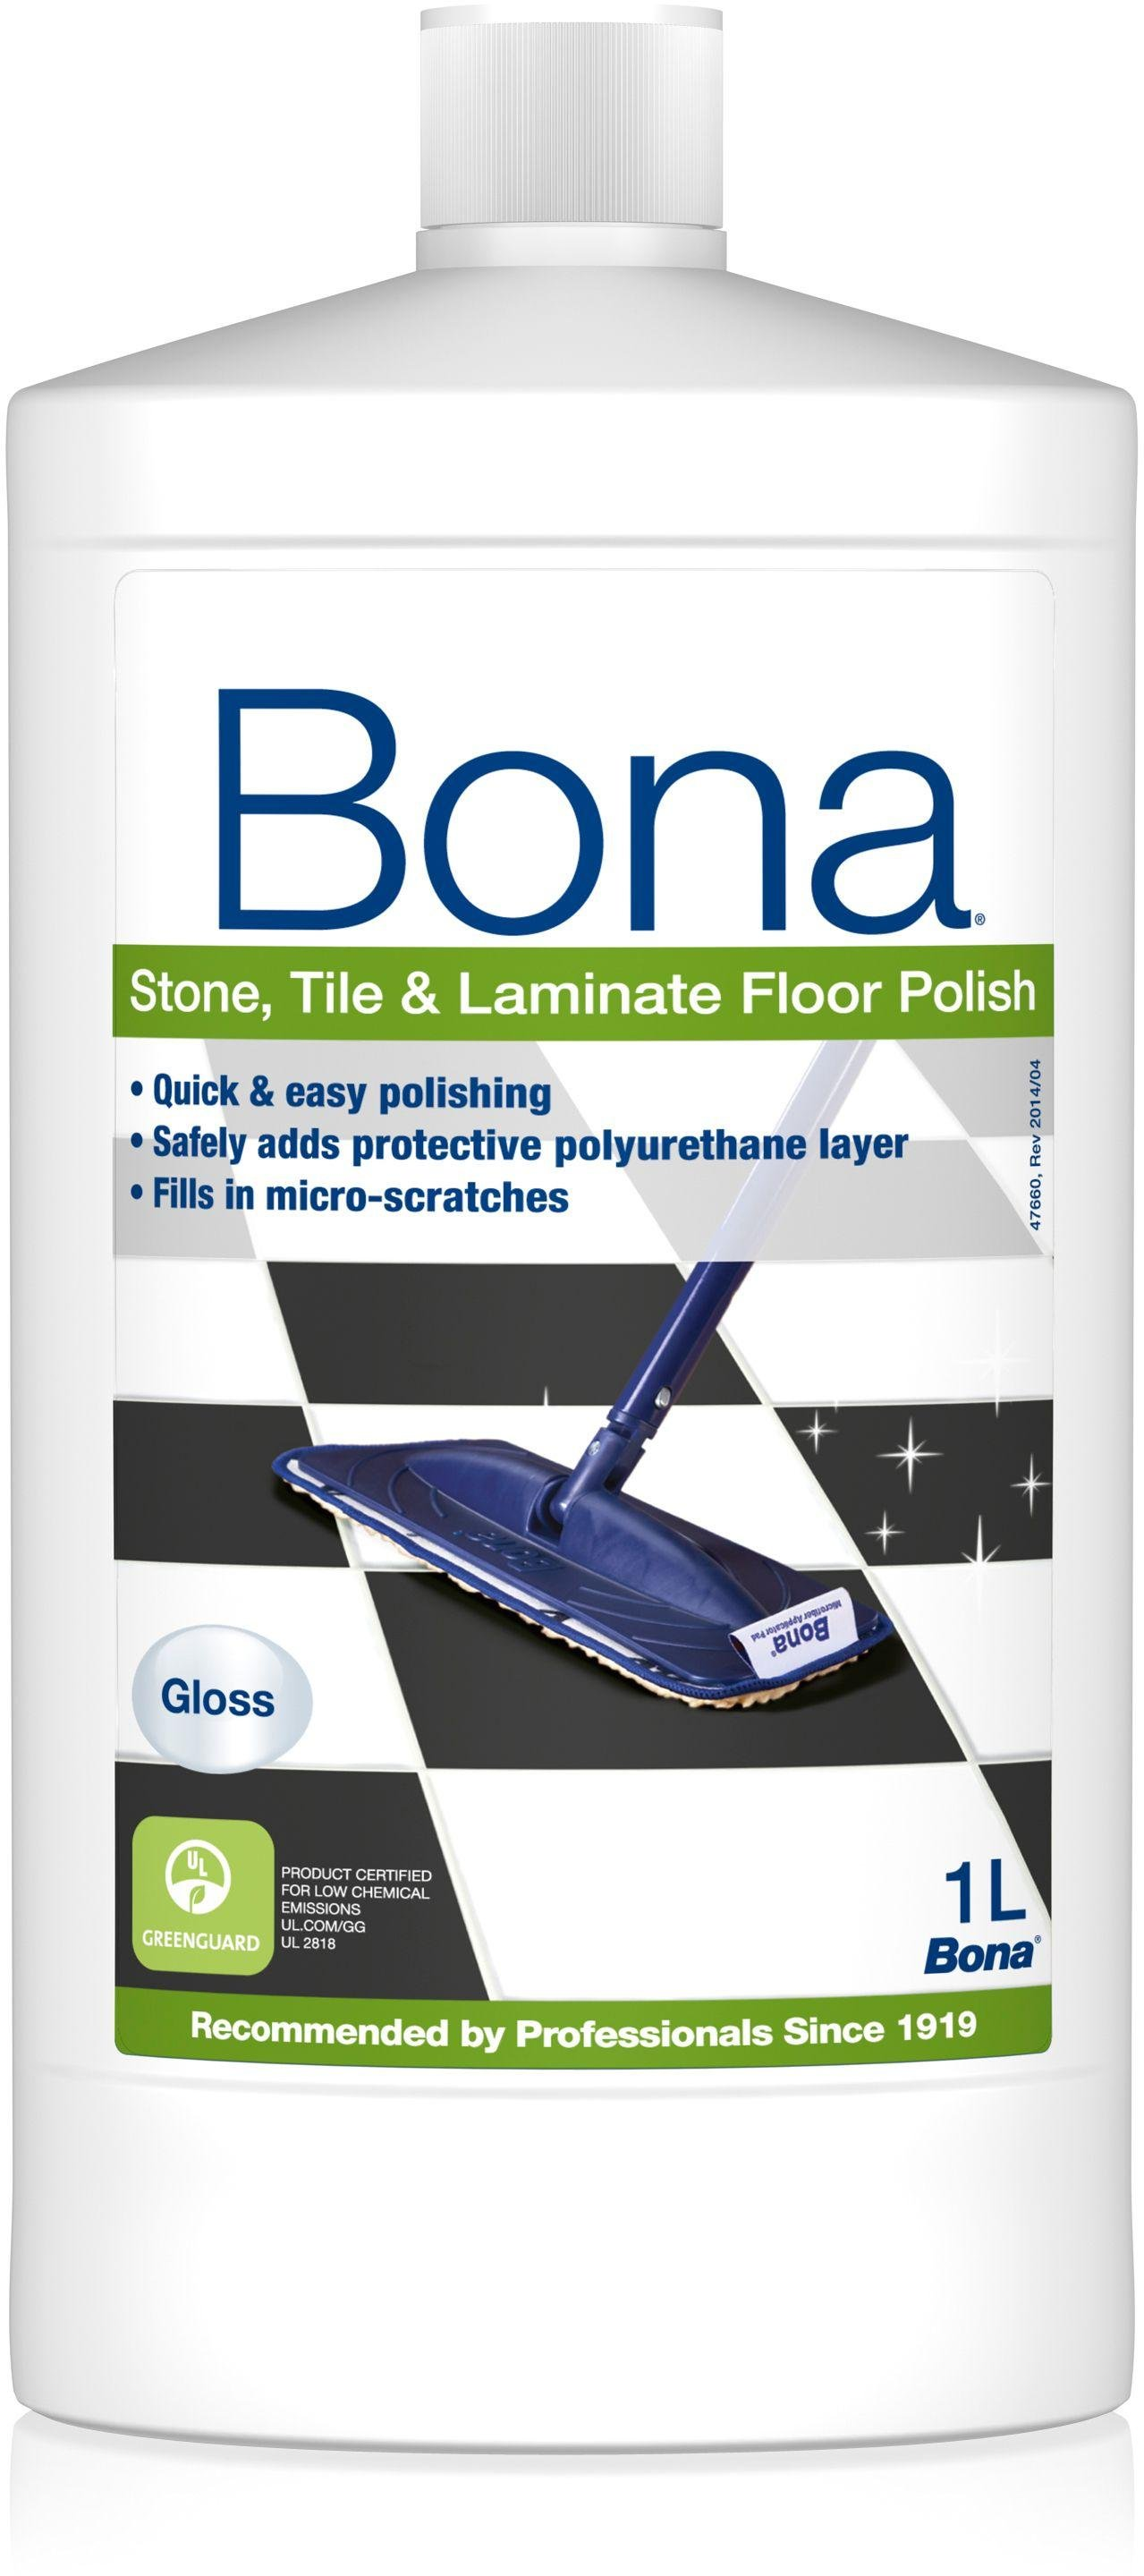 Bona 1L Stone, Tile and Laminate Floor Polish review